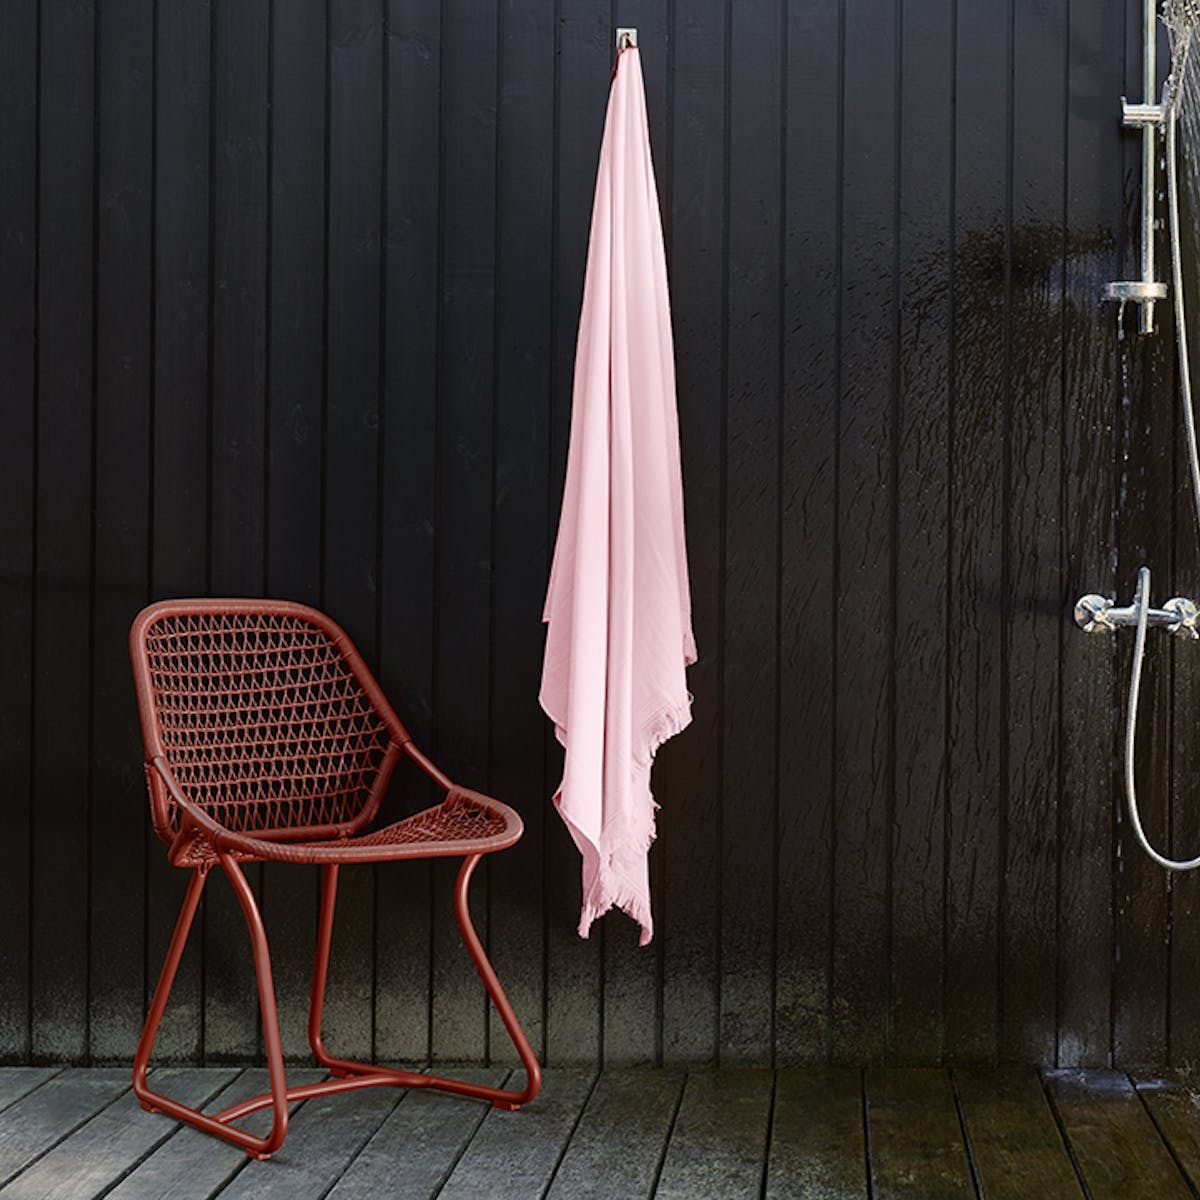 Fermob outdoor dining chair from the Sixties collection in Red Ochre in front of black wall